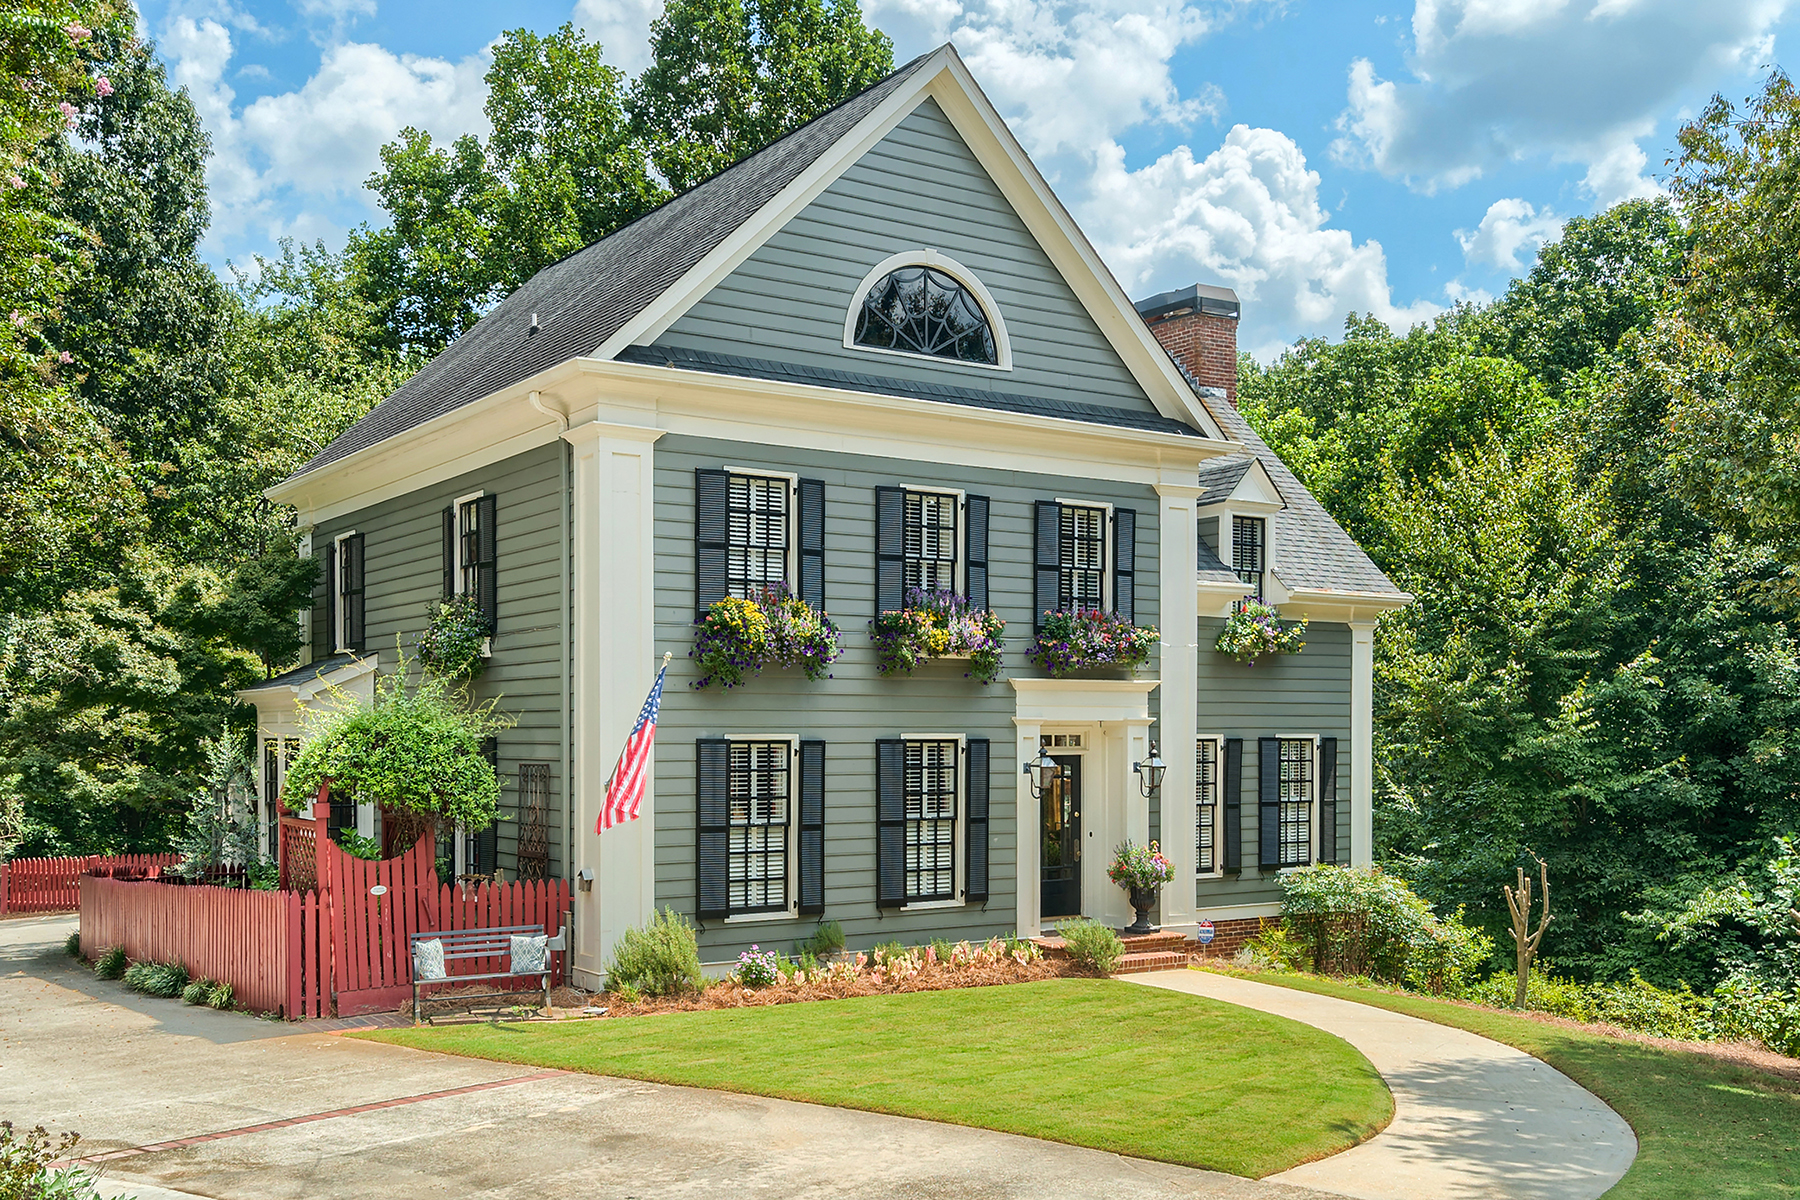 Single Family Home for Sale at Charming Vernacular Farmhouse 3445 Highgate Hills Duluth, Georgia 30097 United States